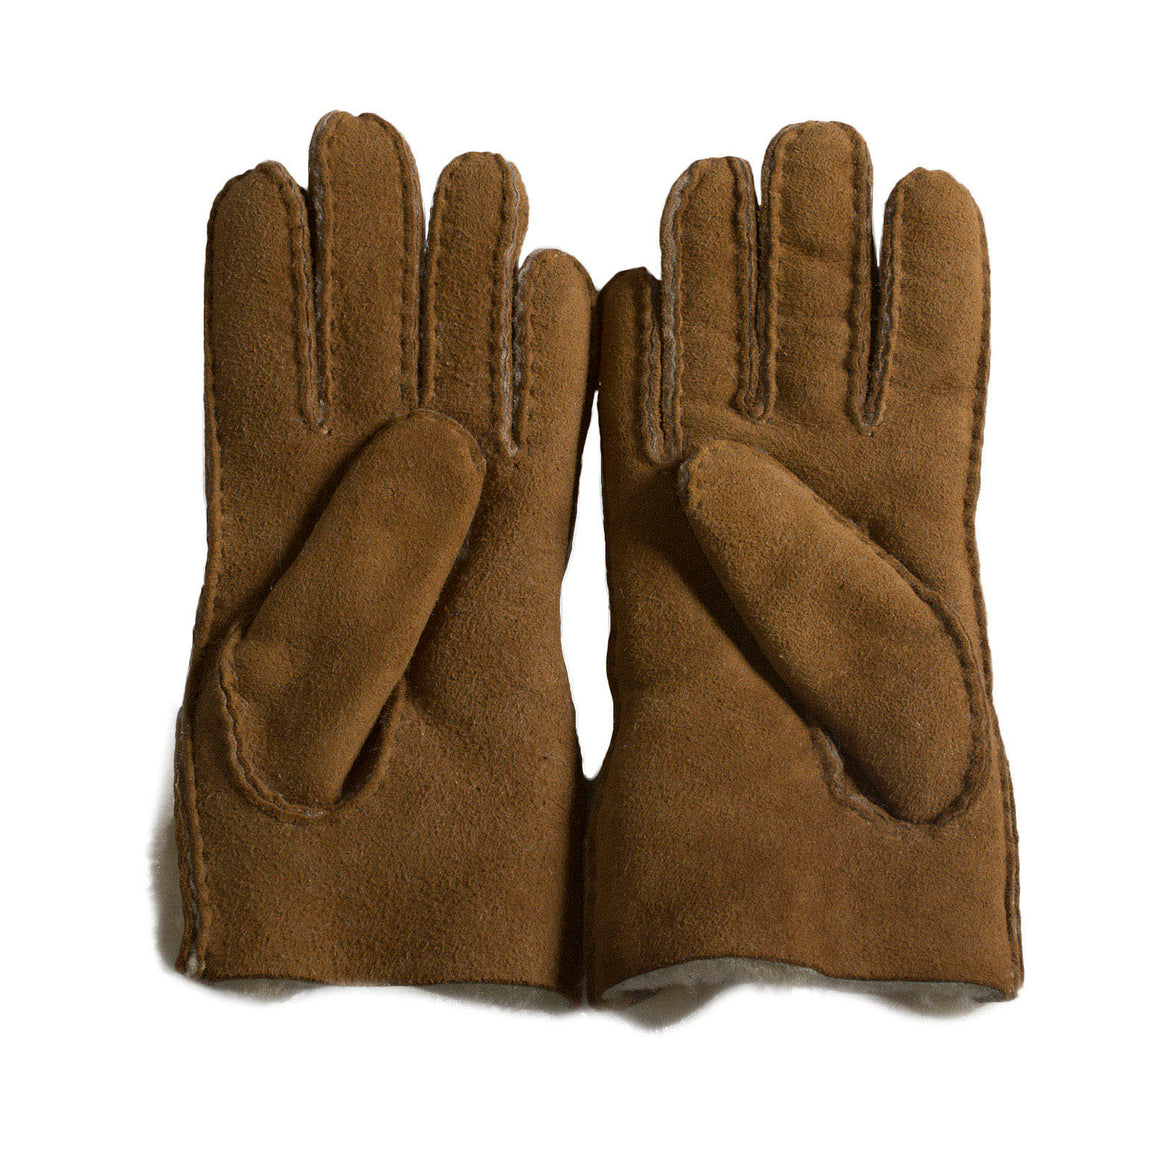 UGG Classic Bow Shortly Chestnut Gloves - Women's